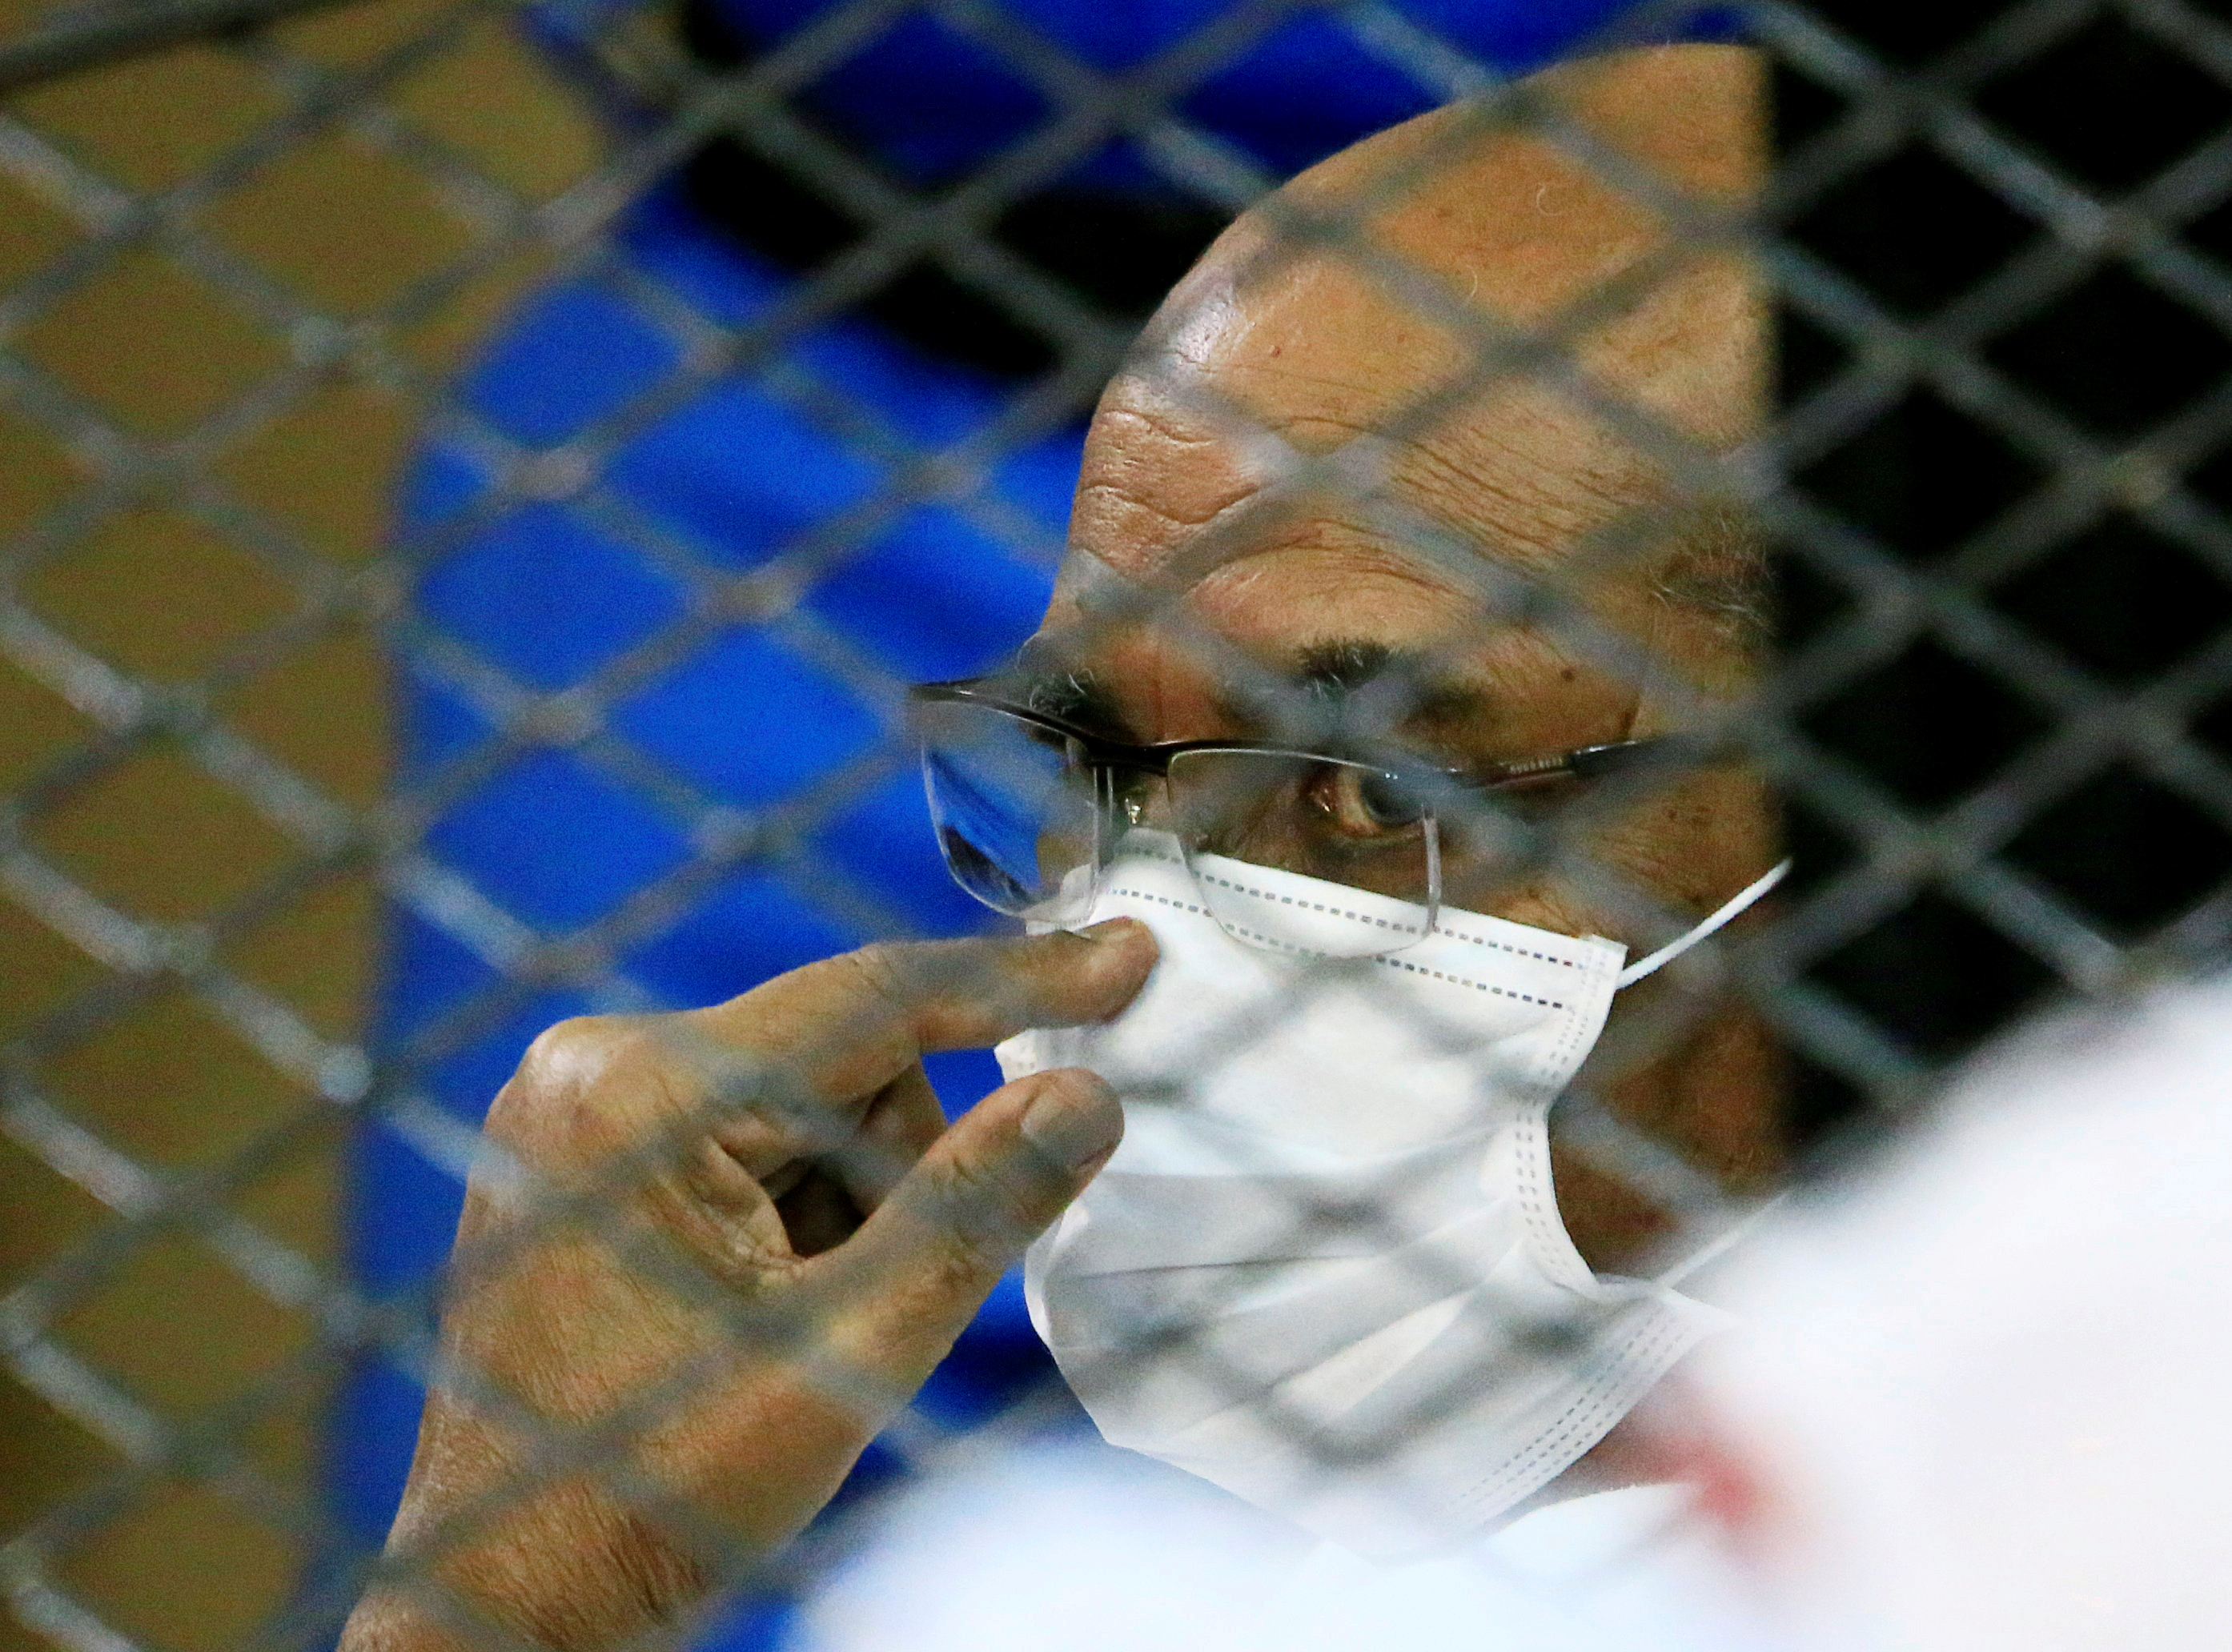 Sudan's ousted President Omar al-Bashir is seen inside the defendant's cage during his and some of his former allies trial over the 1989 military coup that brought the autocrat to power in 1989, at a courthouse in Khartoum, Sudan September 15, 2020. REUTERS/Mohamed Nureldin Abdallah/File Photo